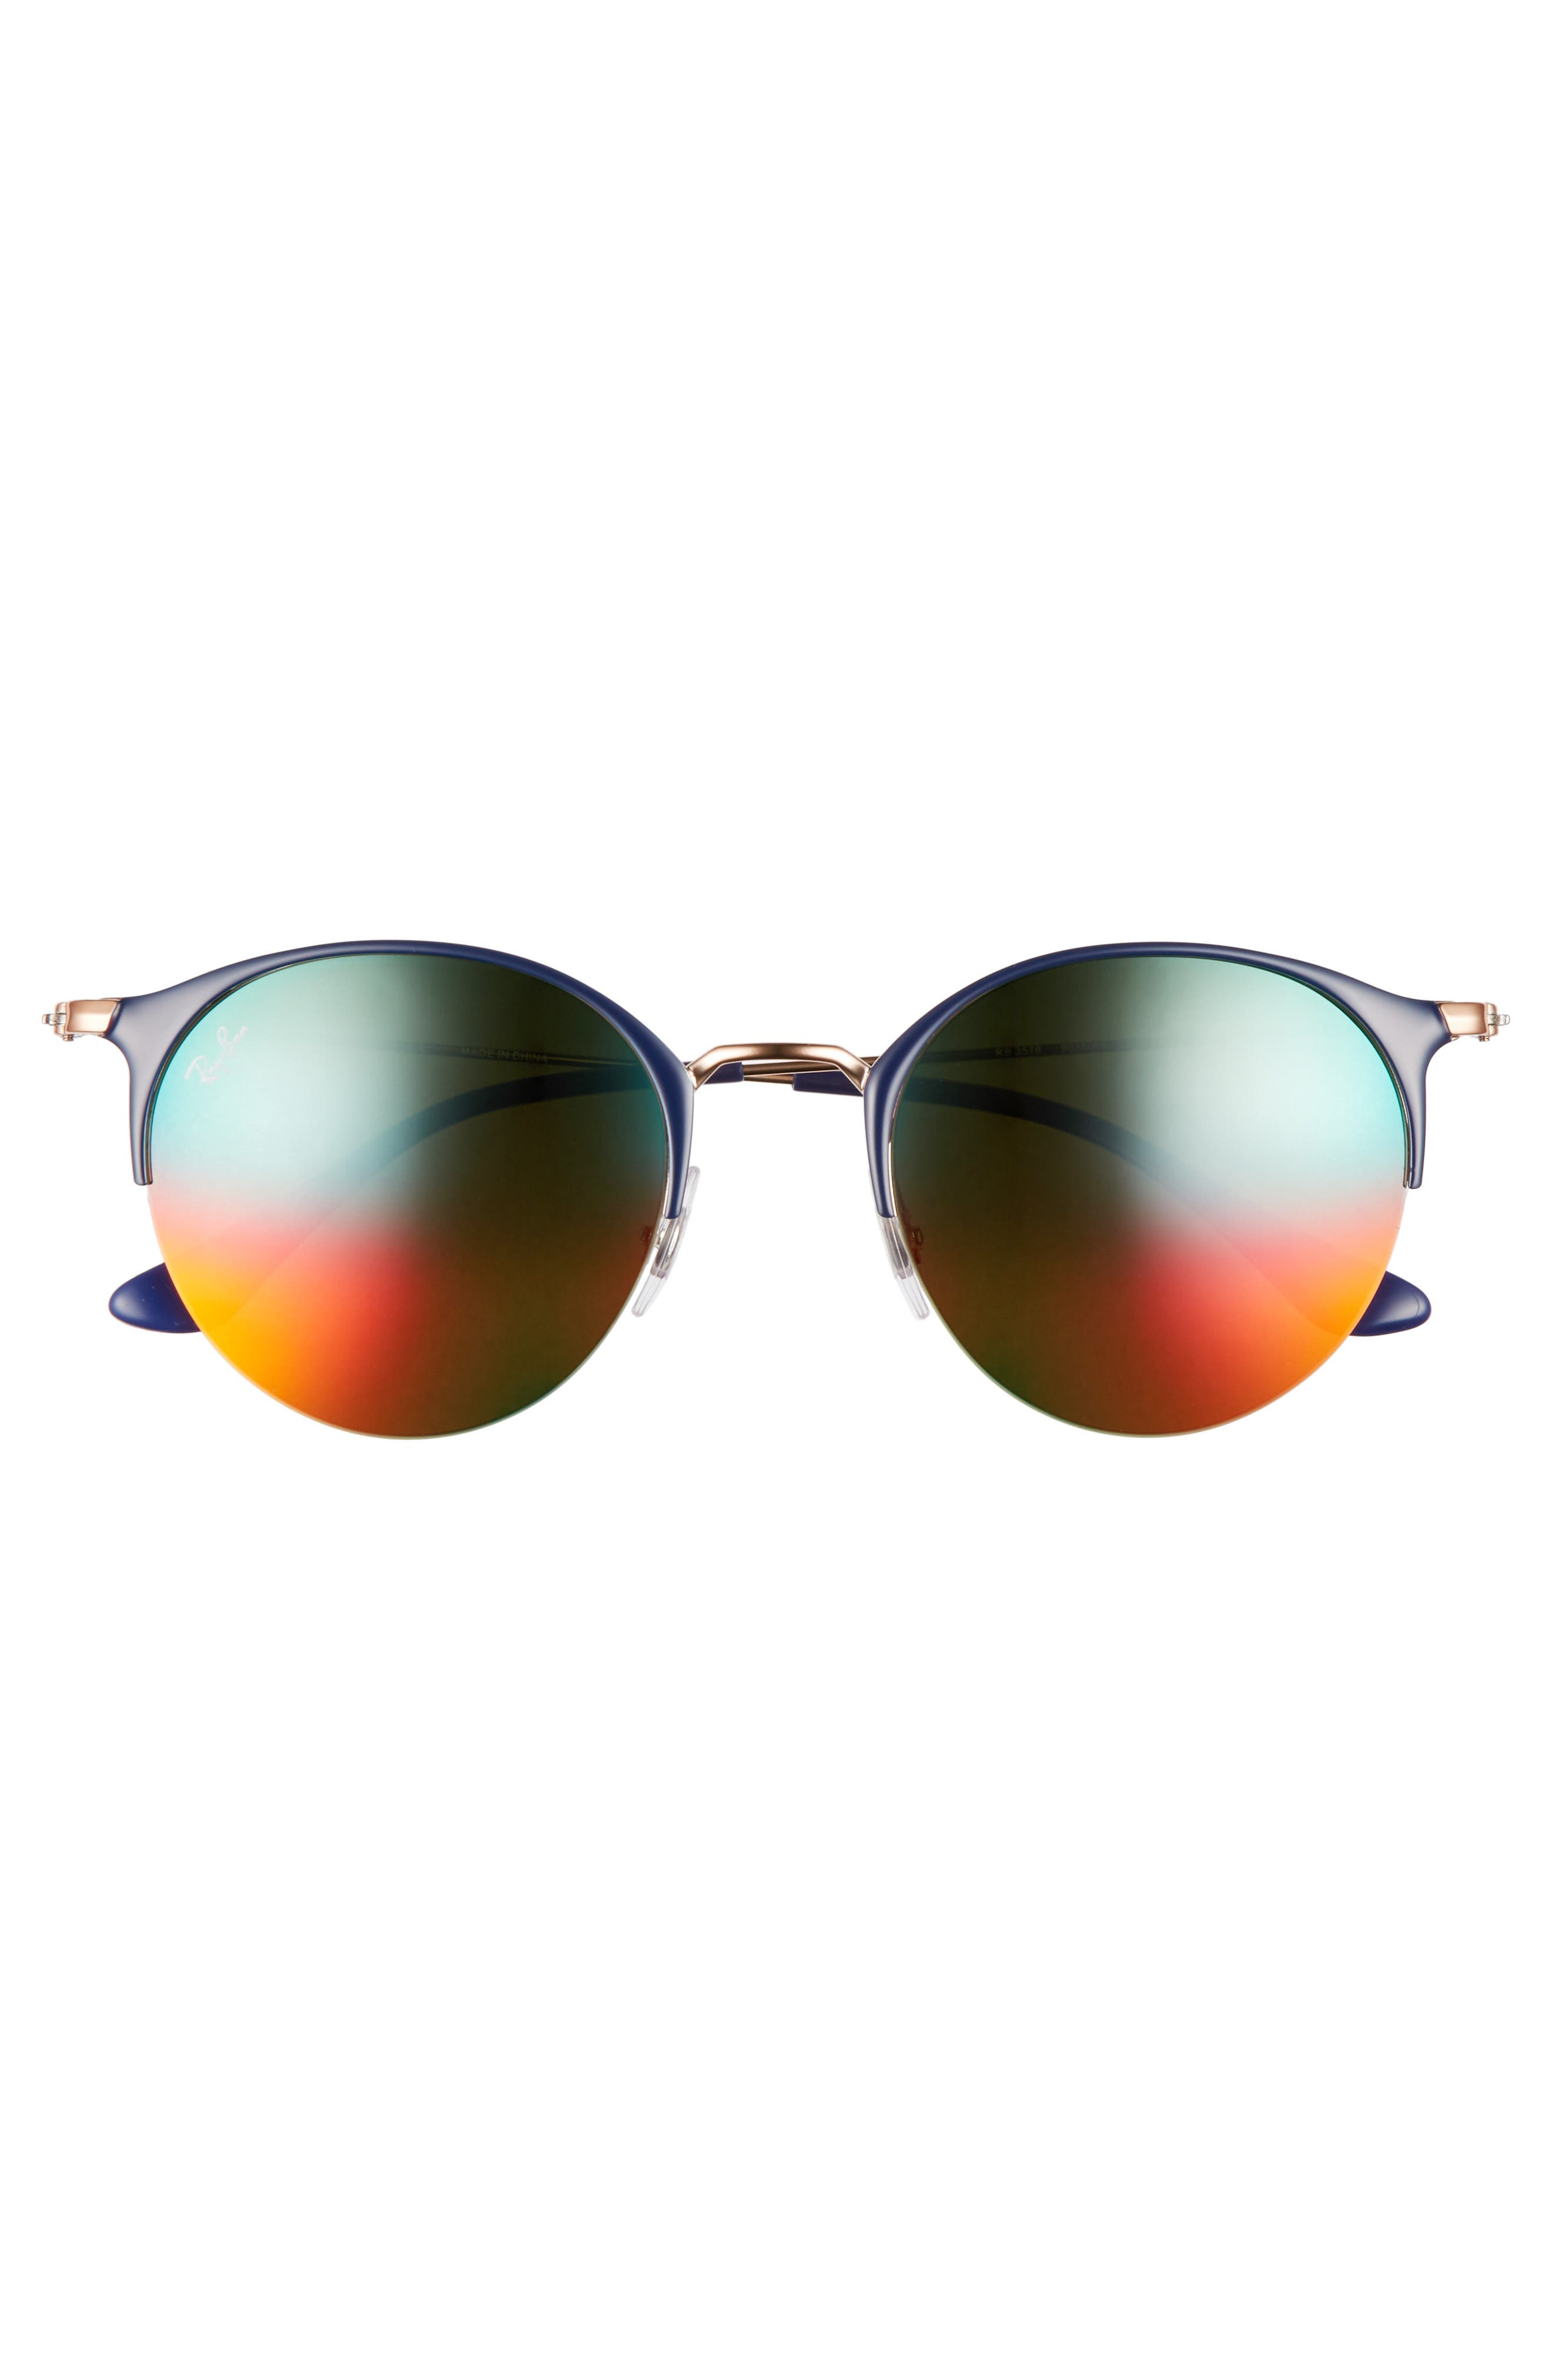 50mm Round Sunglasses,                             Alternate thumbnail 2, color,                             GOLD BLUE/ BROWN MIRROR